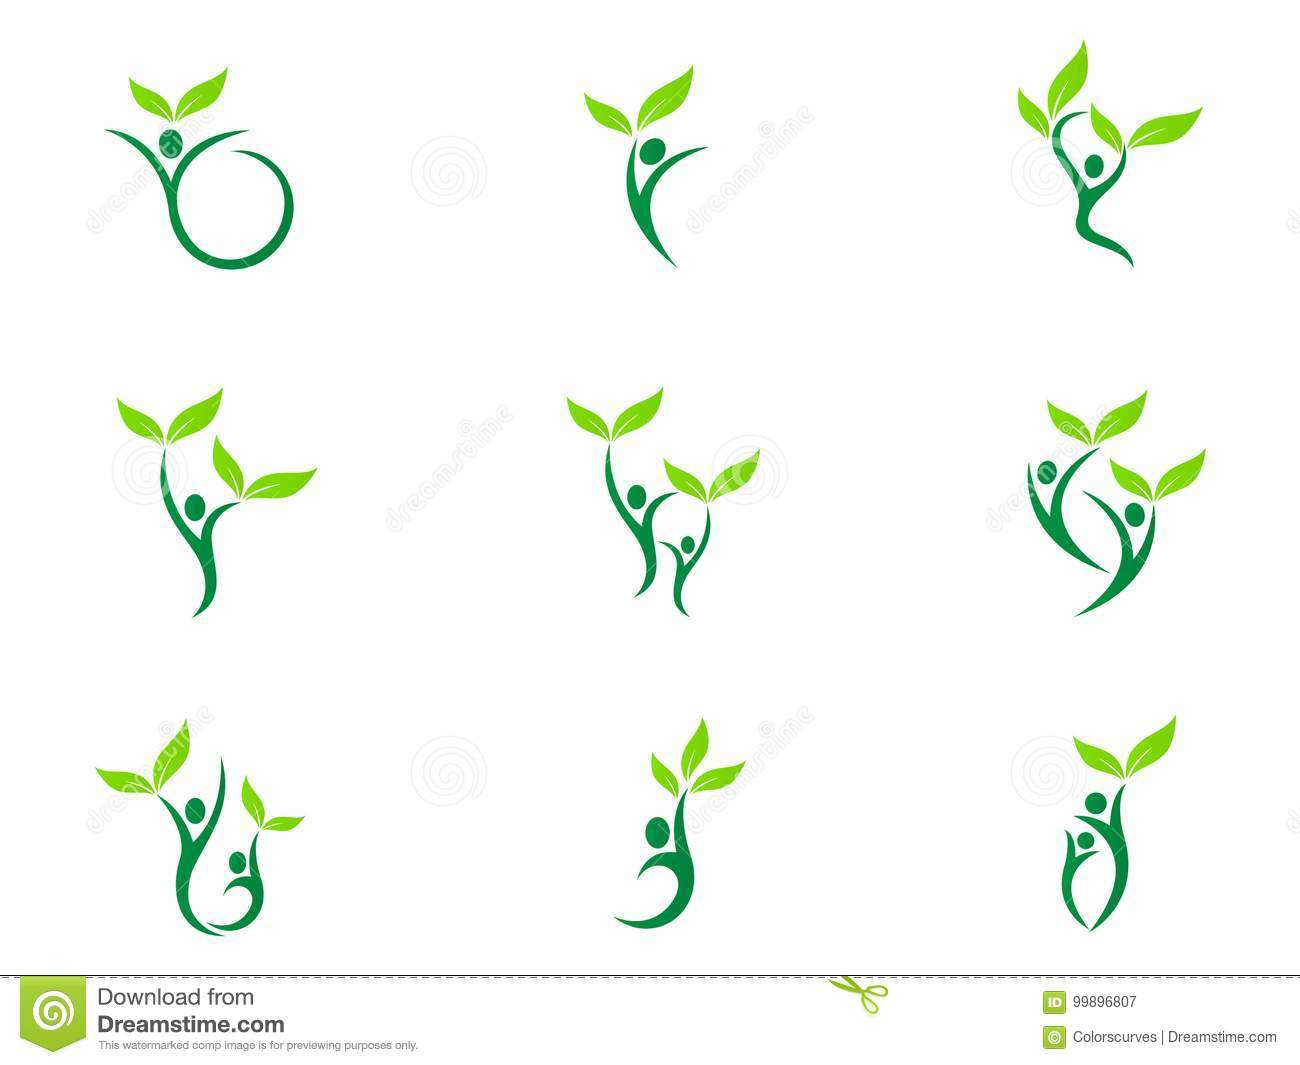 People wellness logo health care fitness eco friendly green couple agriculture success vector symbol icon design.